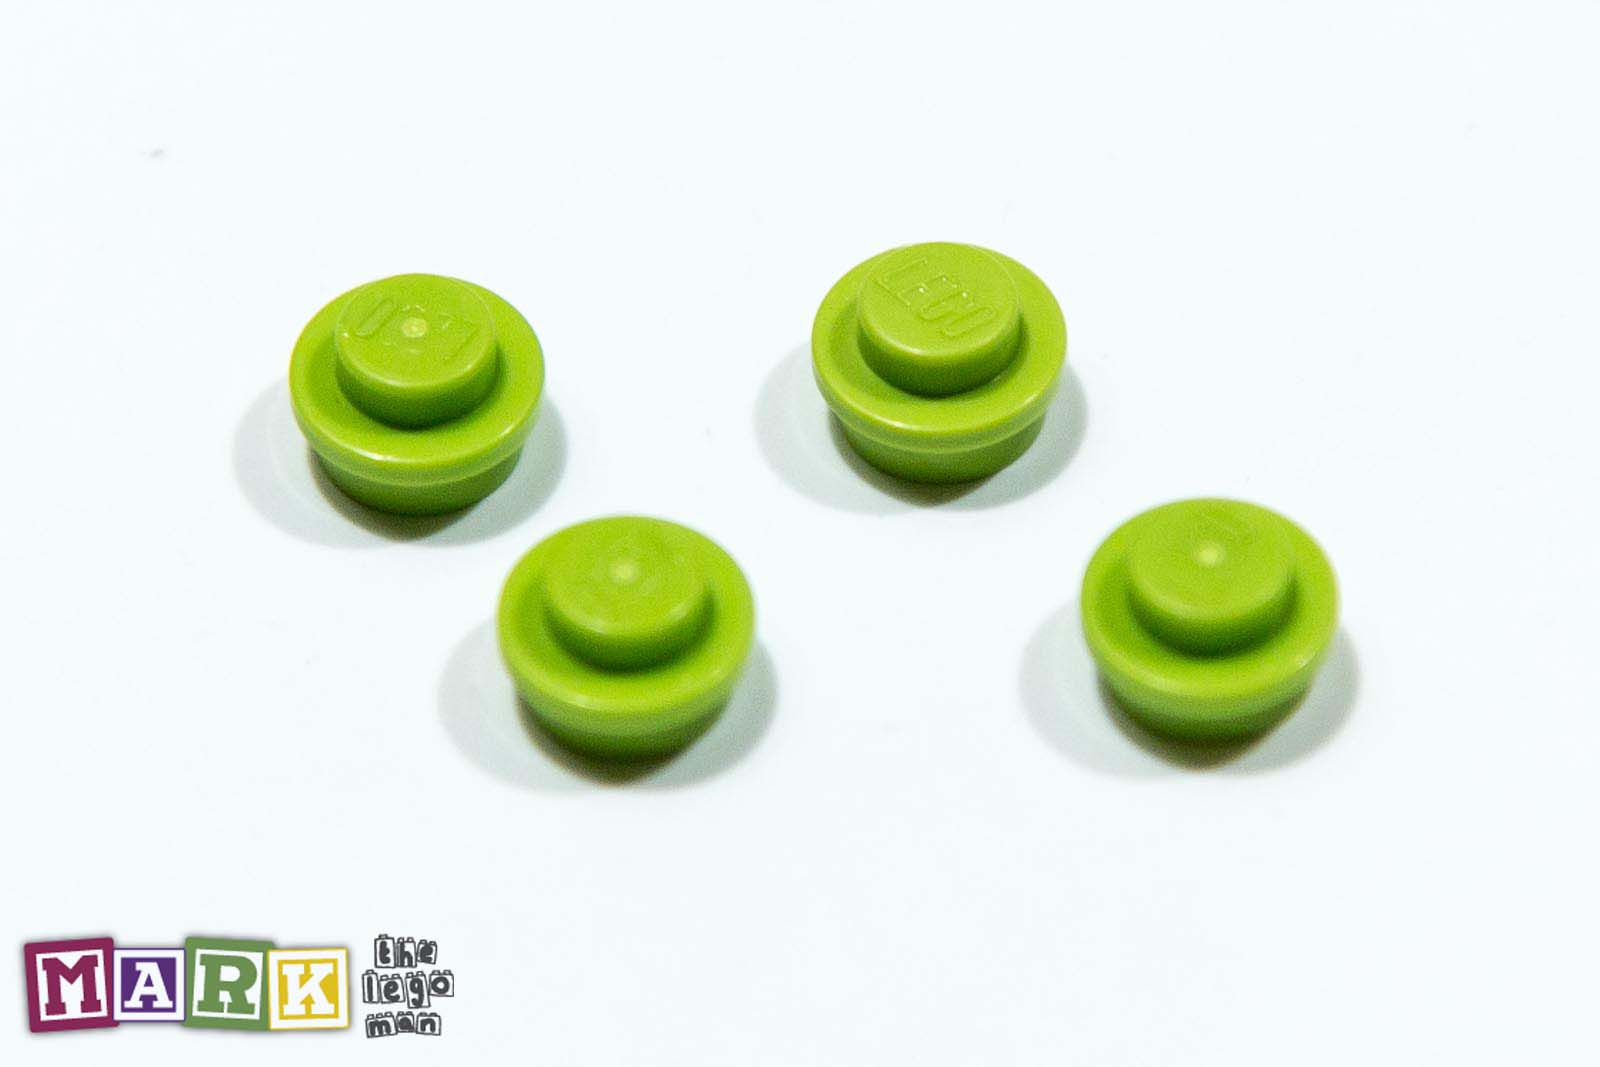 4183133 4073 Job Lot 4x Bright Yellow Green 1x1 RARE Plate Round